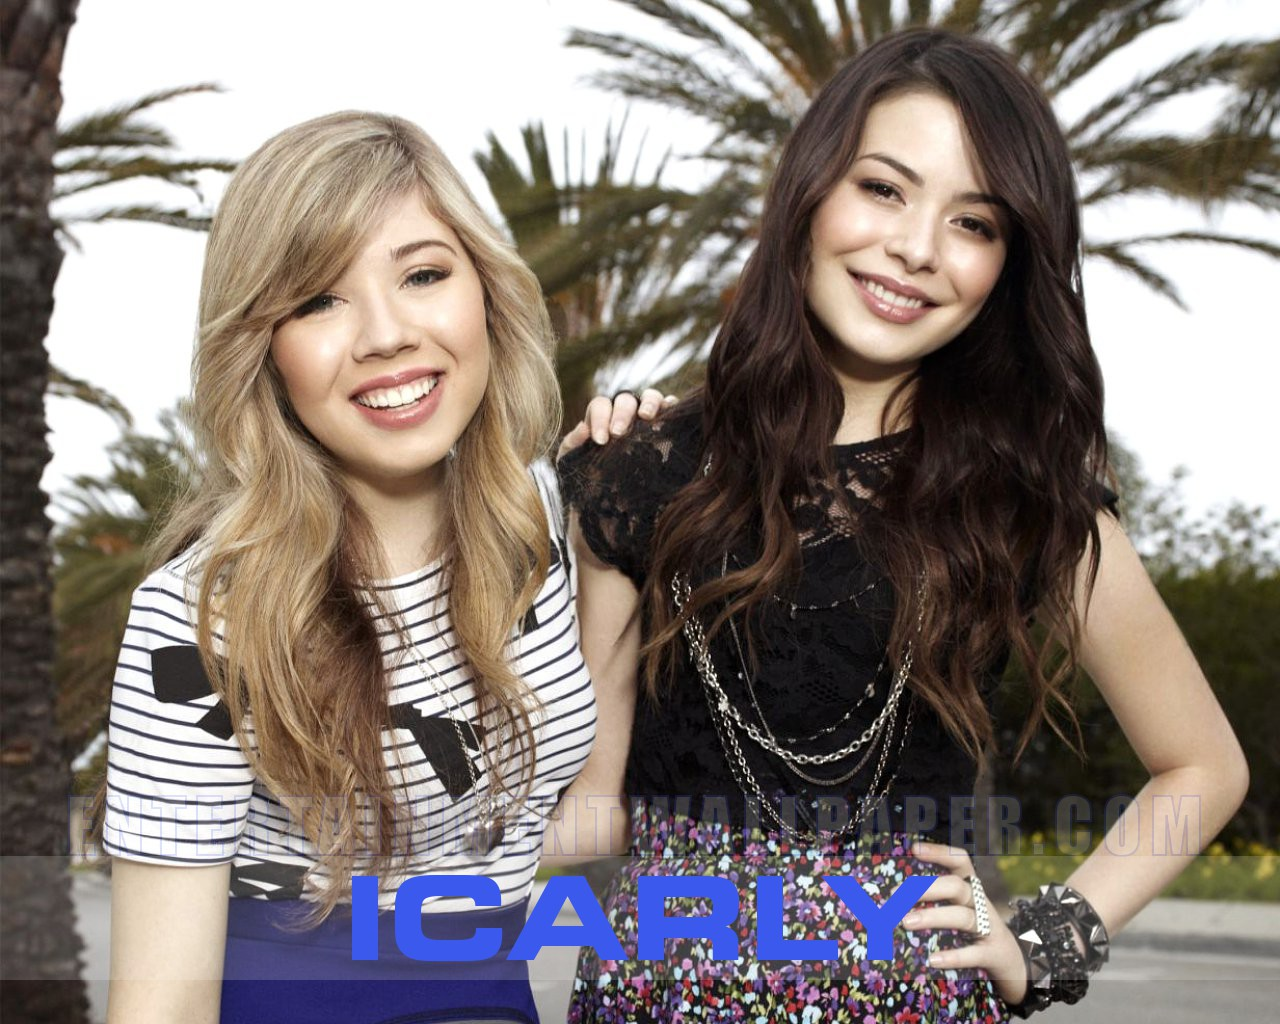 iCarly Wallpaper - Original size, download now.